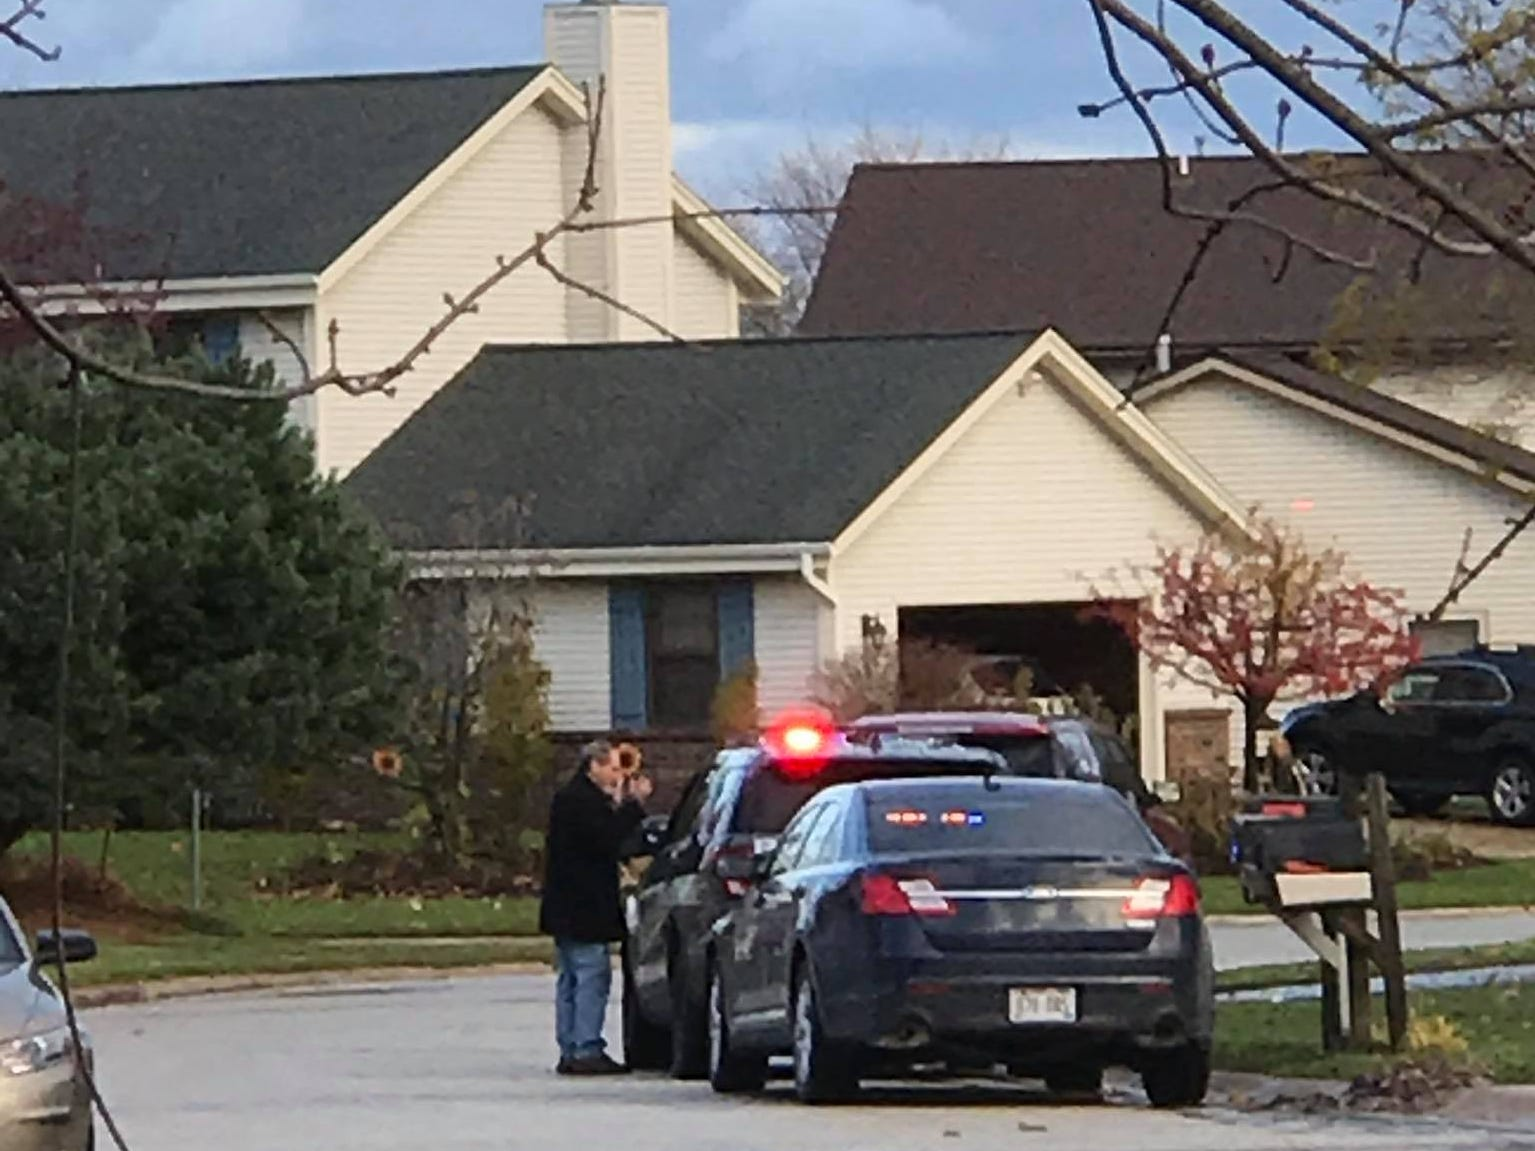 An officer-involved shooting took place outside of River of Life Church of God, W156 N7616 Pilgrim Road in Menomonee Falls. The house and cars seen here are just off Pilgrim Road.